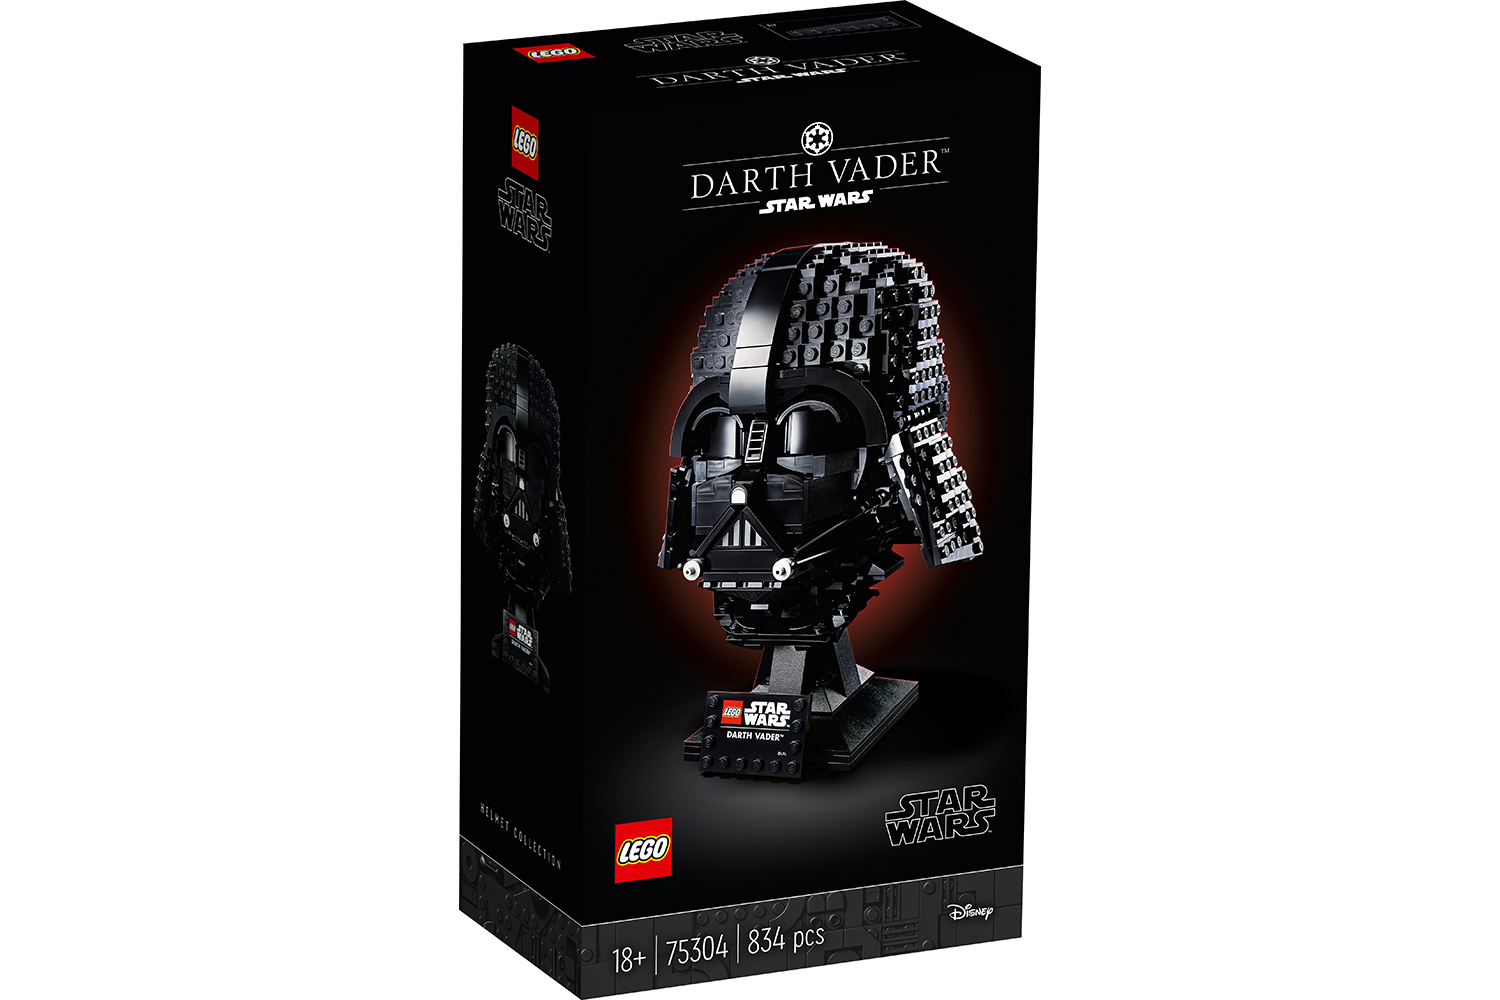 lego-star-wars-darth-vader-helm-75304/